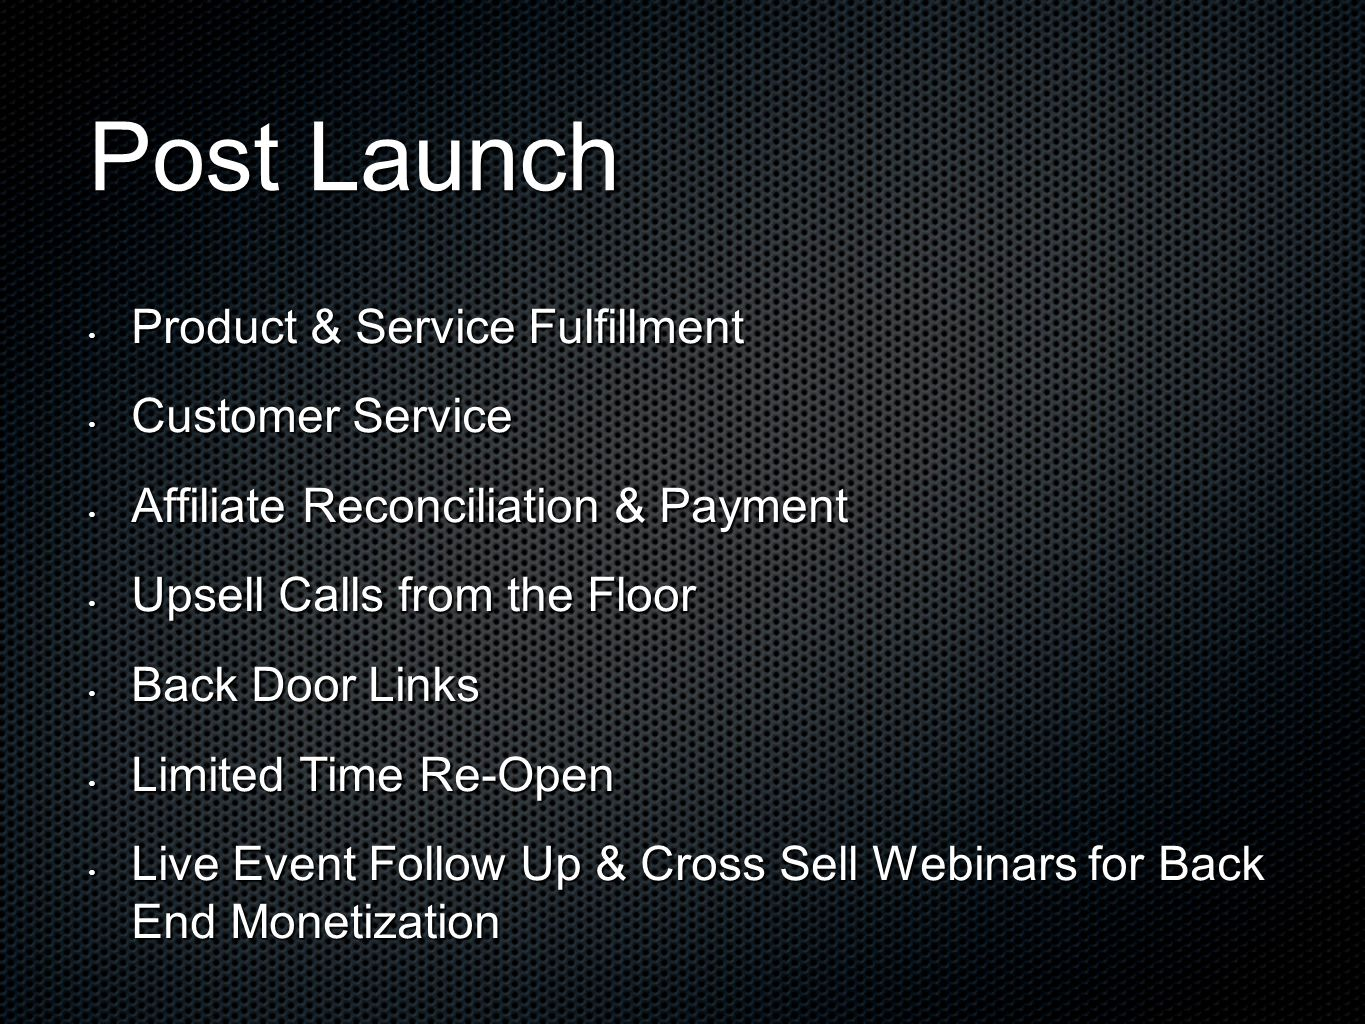 Post Launch Product & Service Fulfillment Product & Service Fulfillment Customer Service Customer Service Affiliate Reconciliation & Payment Affiliate